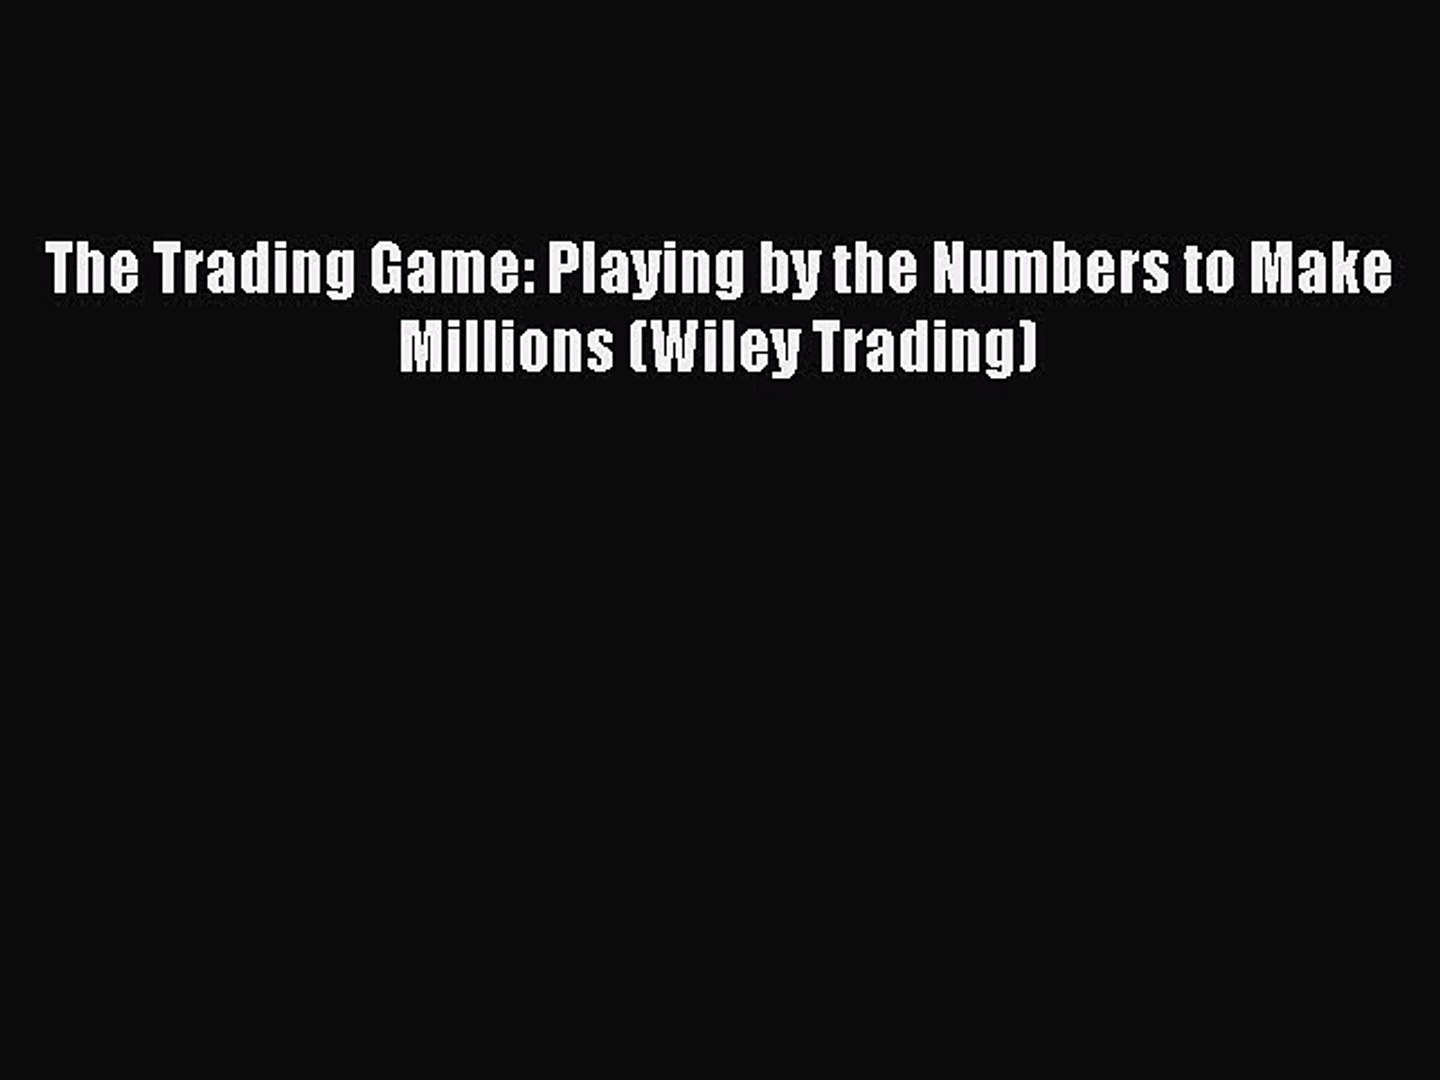 [PDF] The Trading Game: Playing by the Numbers to Make Millions (Wiley Trading) [Read] Online